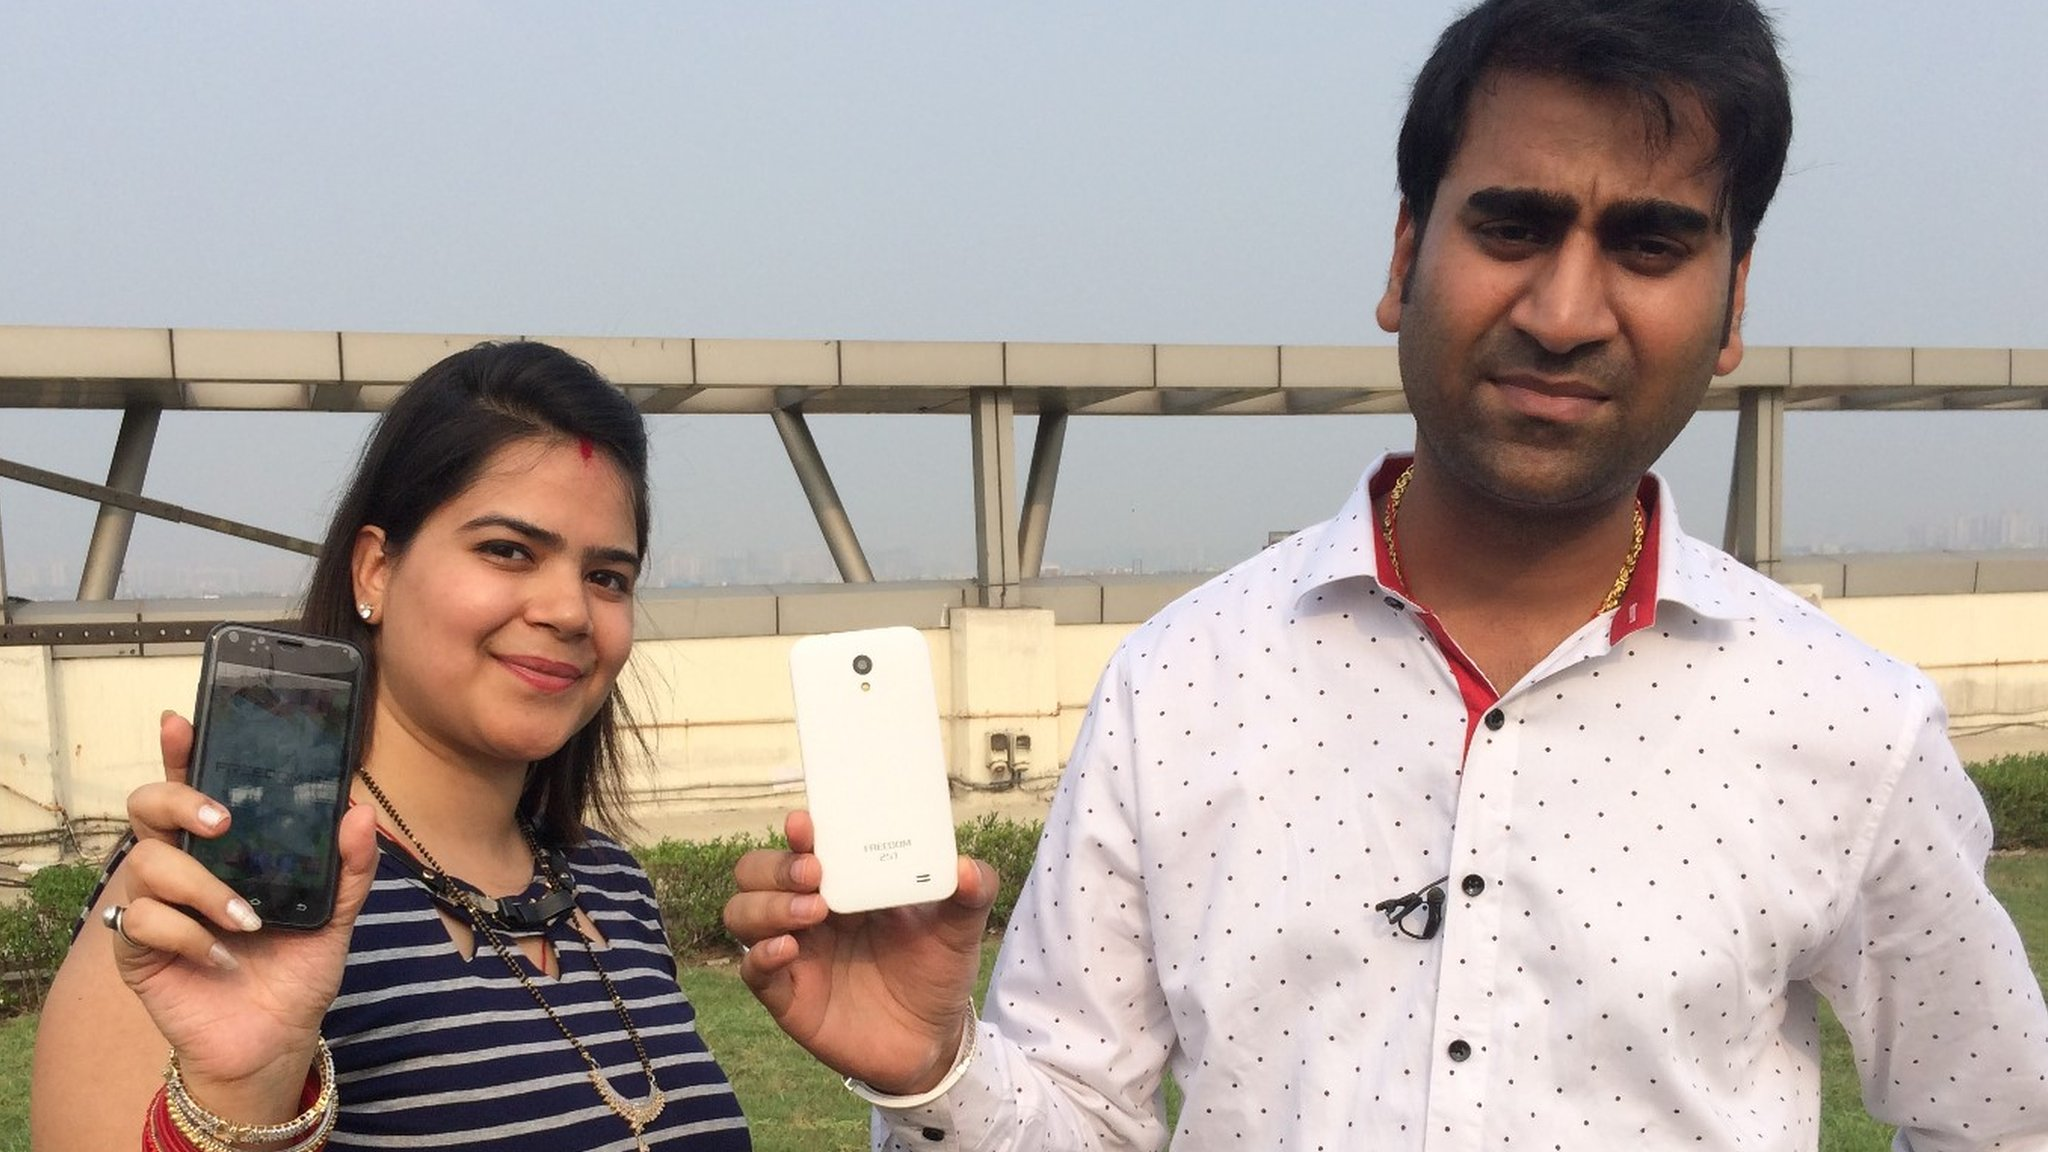 Hands on with India's £3 smartphone